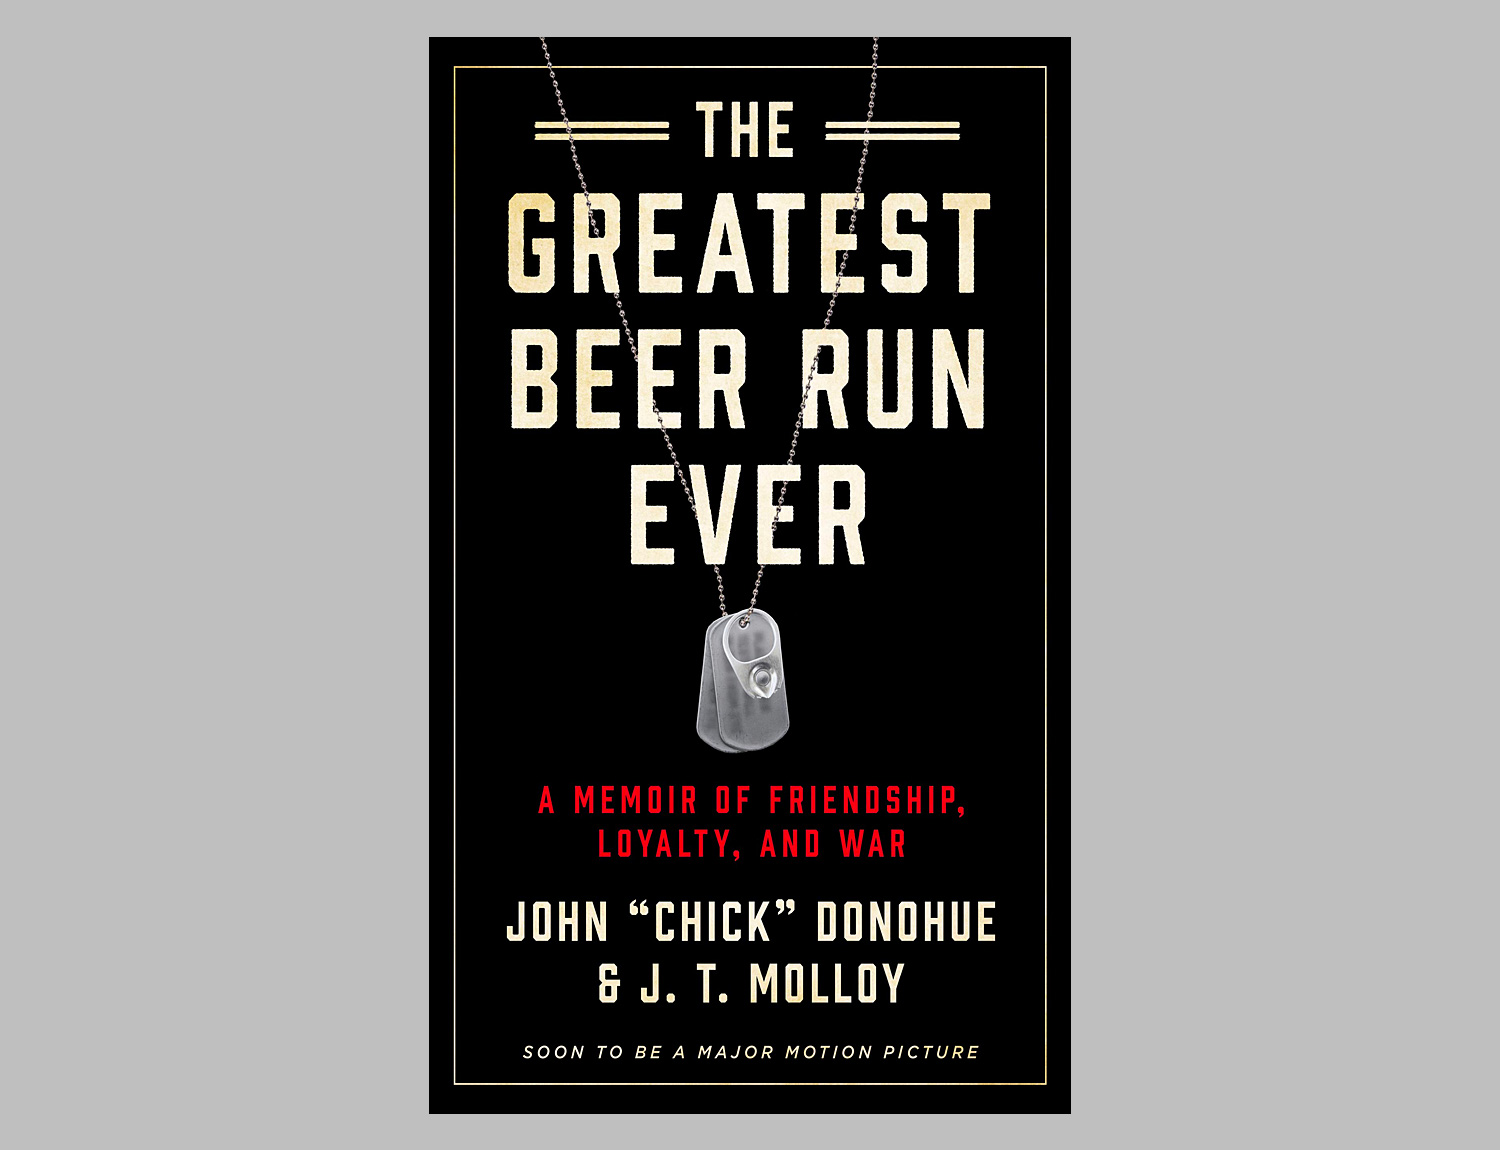 The Greatest Beer Run Ever: A Memoir of Friendship, Loyalty, and War at werd.com